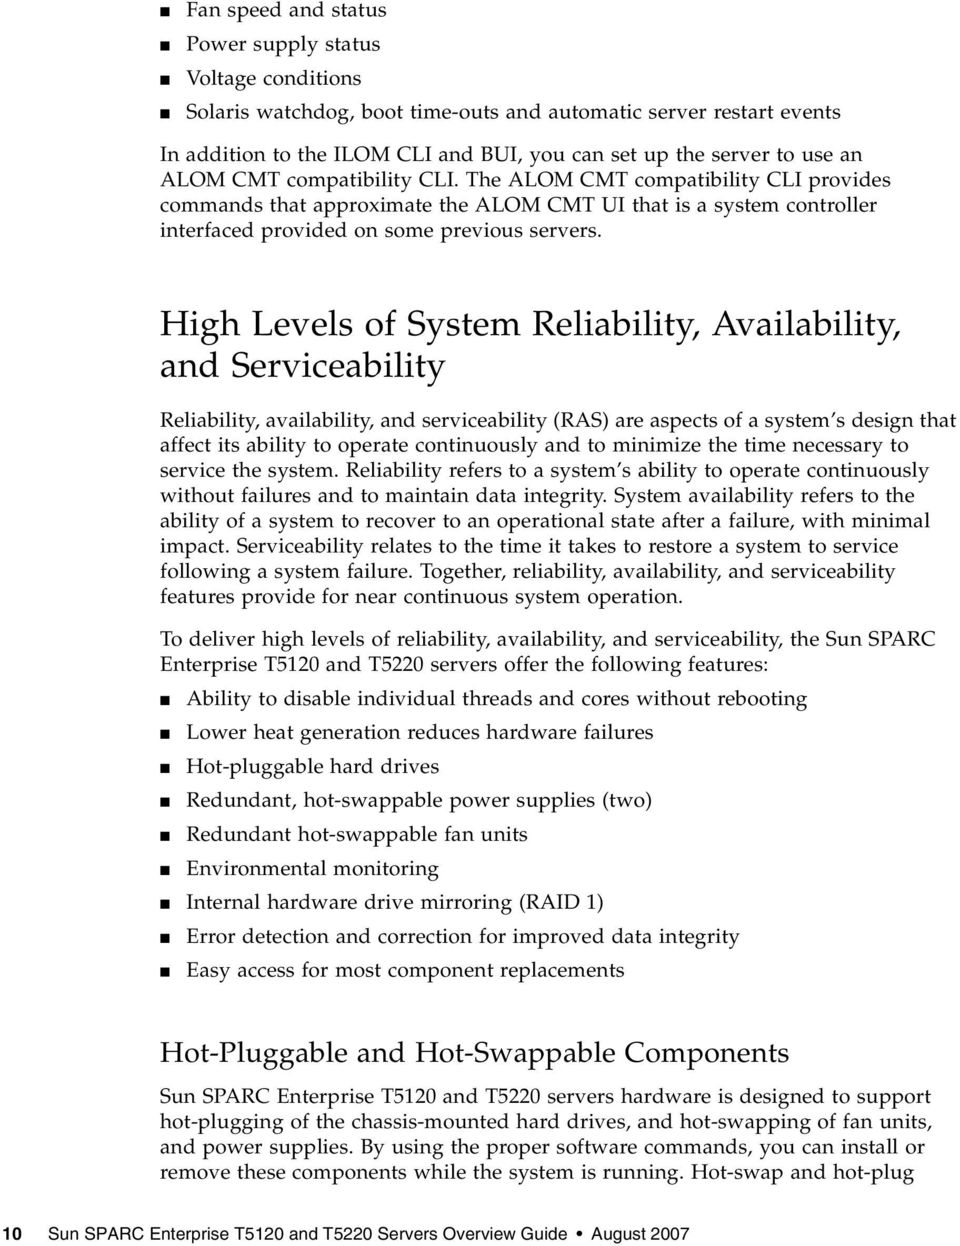 High Levels of System Reliability, Availability, and Serviceability Reliability, availability, and serviceability (RAS) are aspects of a system s design that affect its ability to operate